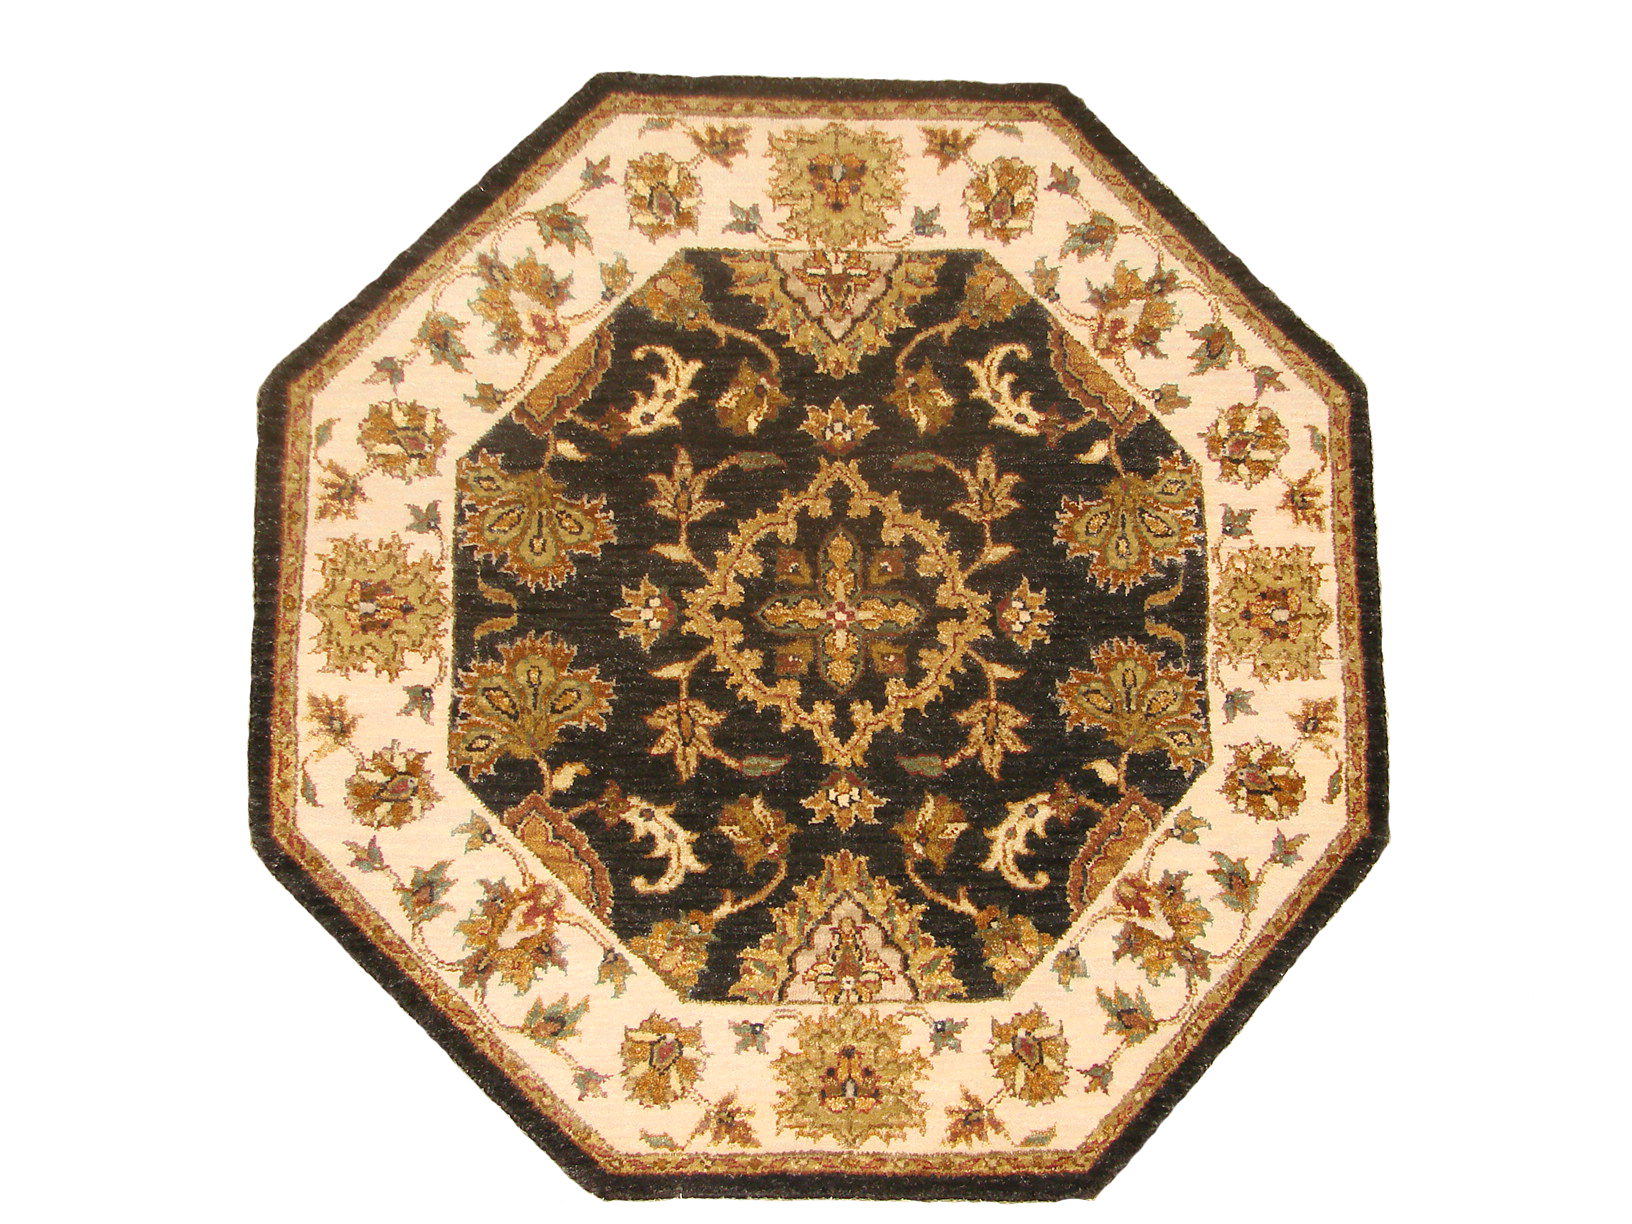 3 ft. Round & Square Traditional Hand Knotted Wool Area Rug - MR18725